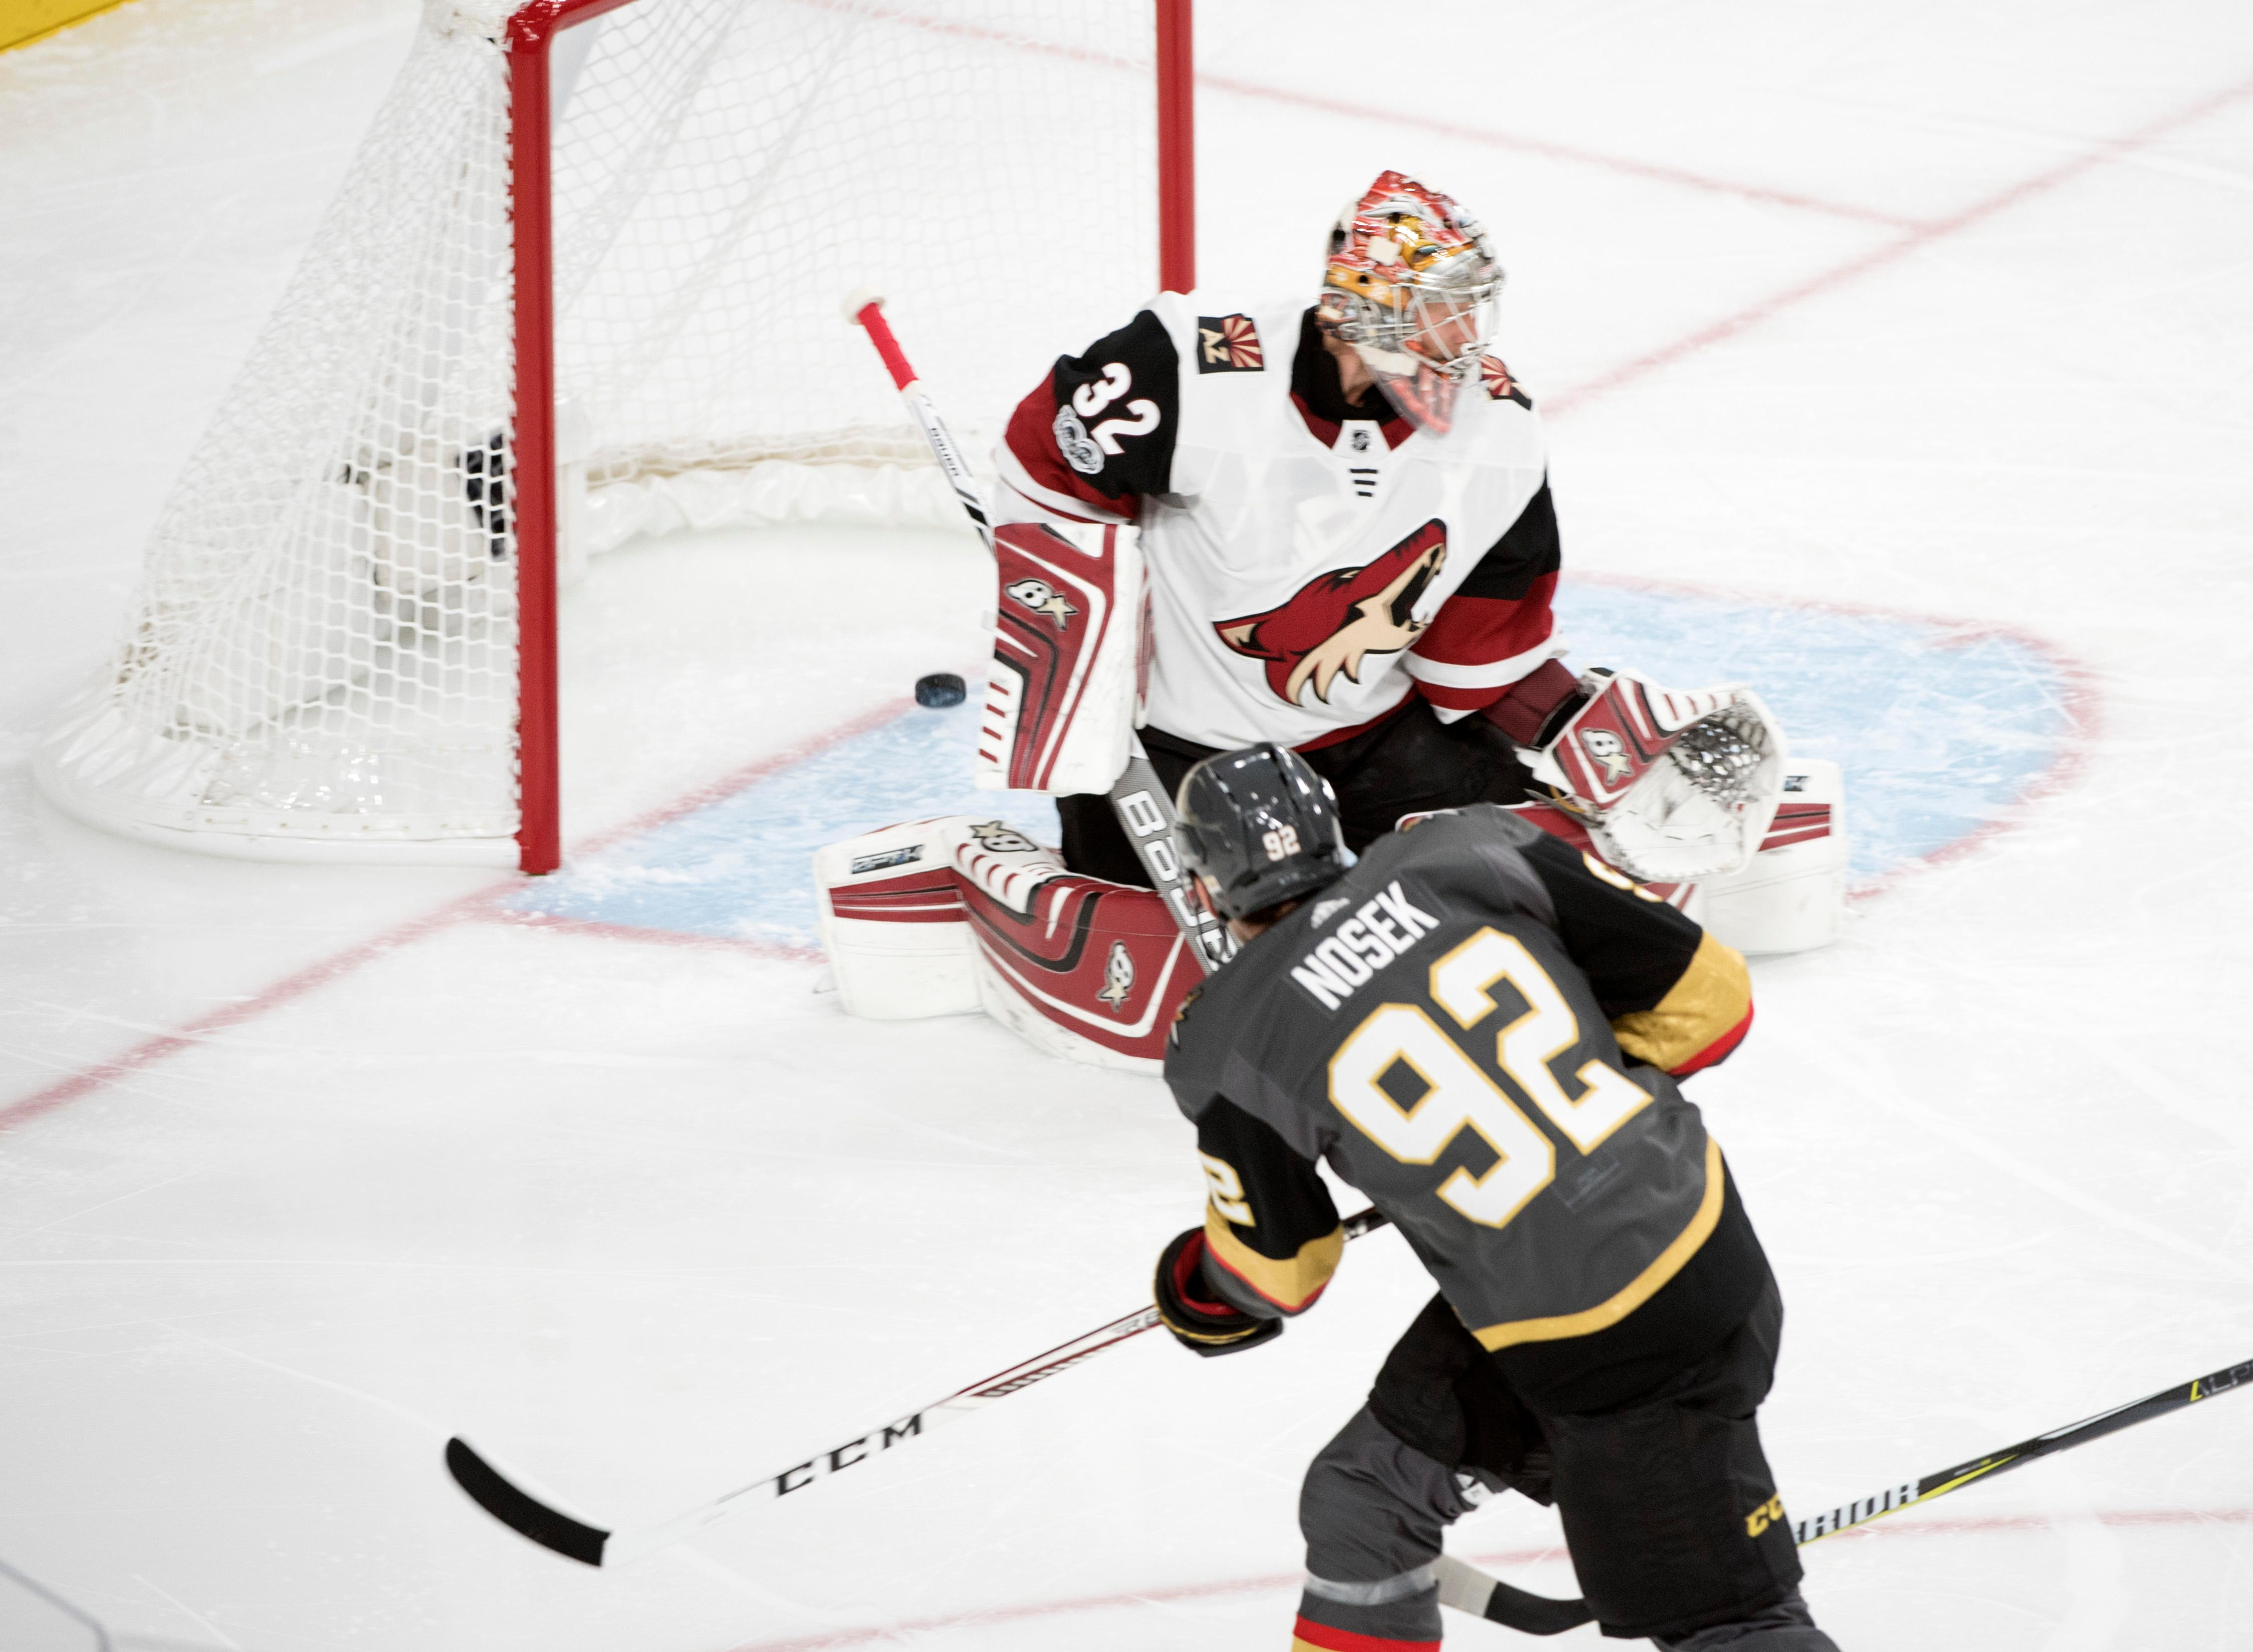 Vegas Golden Knights left wing Tomas Nosek (92) gets the puck past Arizona Coyotes goalie Antti Raanta (32) for their first home goal during the Knights home opener Tuesday, Oct. 10, 2017, at the T-Mobile Arena. The Knights won 5-2 to extend their winning streak to 3-0. CREDIT: Sam Morris/Las Vegas News Bureau